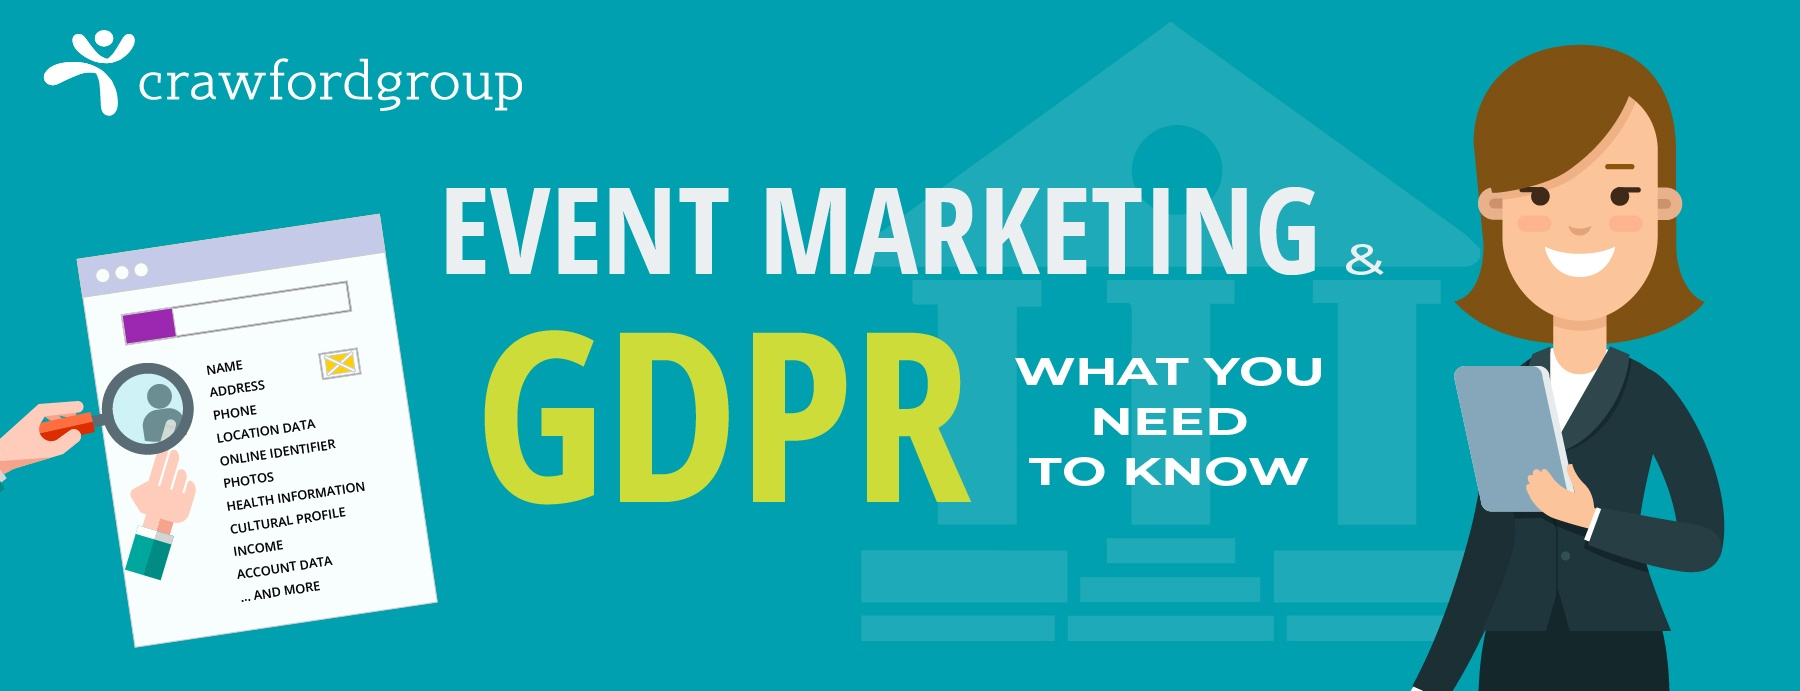 event-marketing-gdpr_infographic_gdpr banner